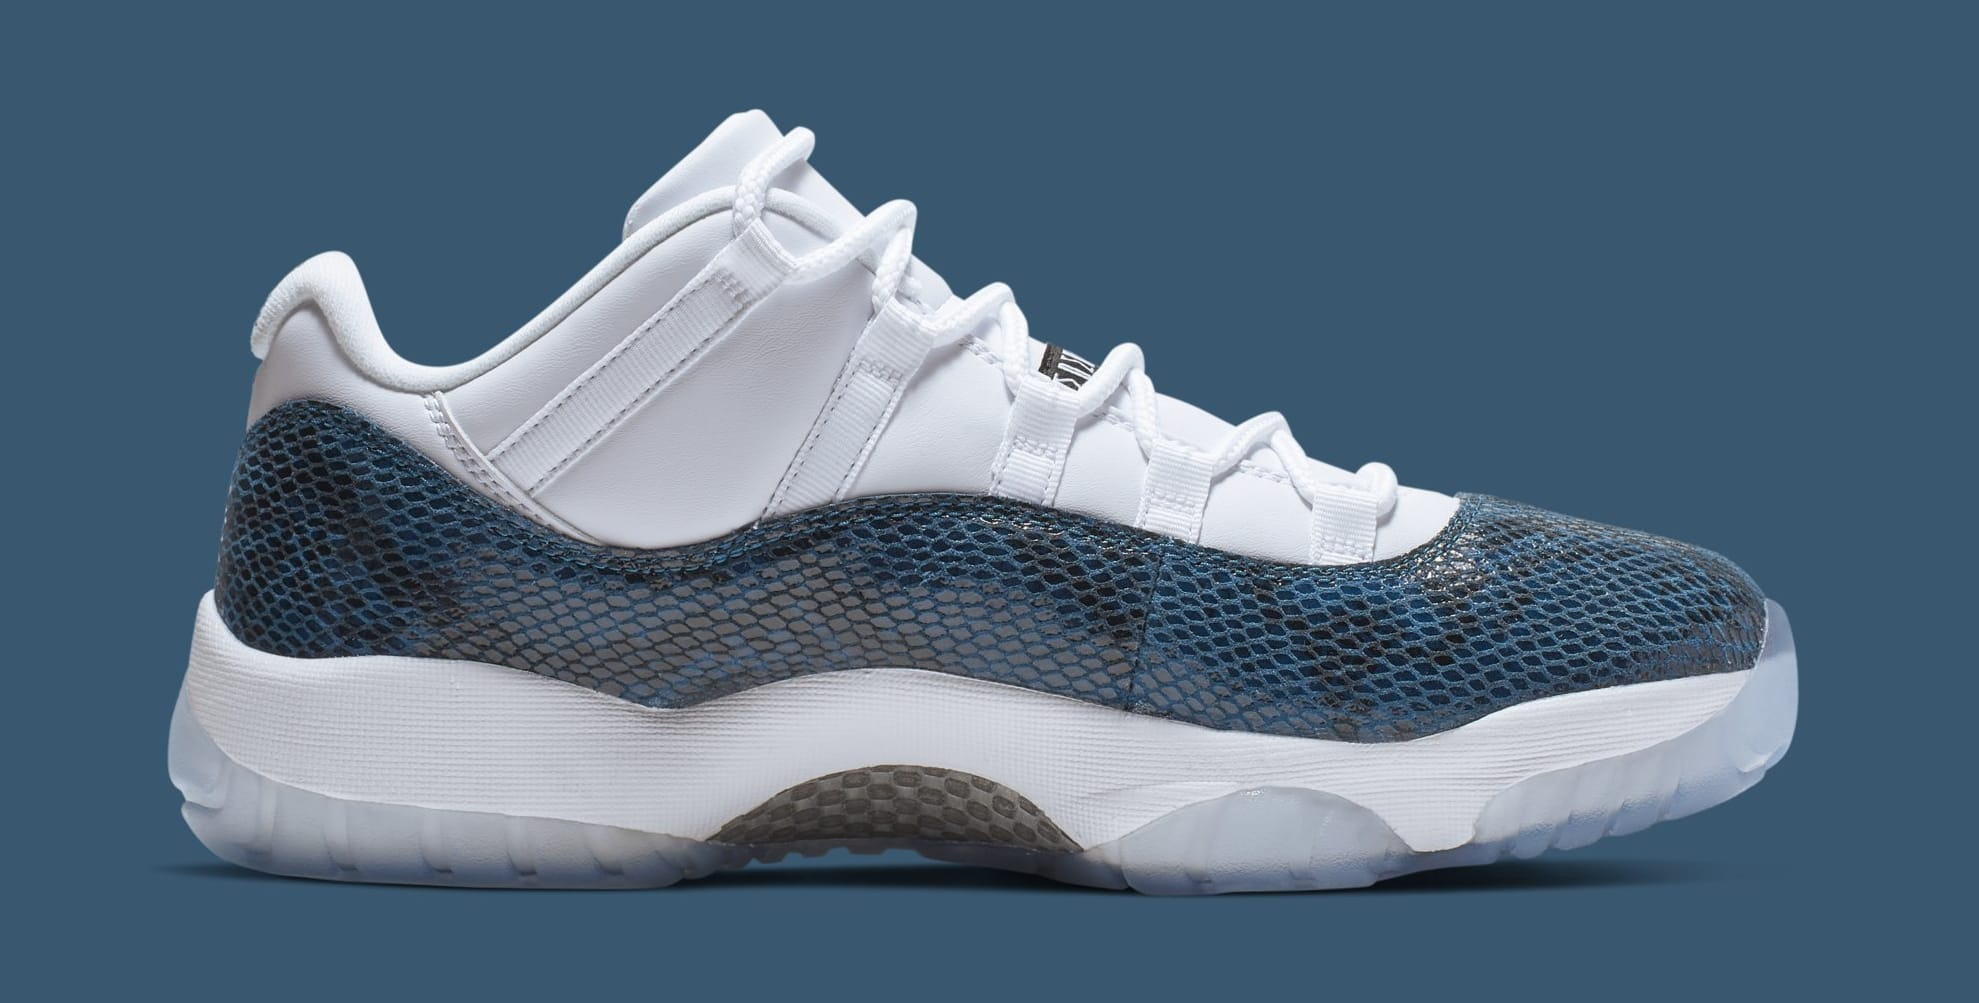 a4e11cd6a3f2 Image via Nike Air Jordan 11 Low  Blue Snakeskin  CD6846-102 (Medial)